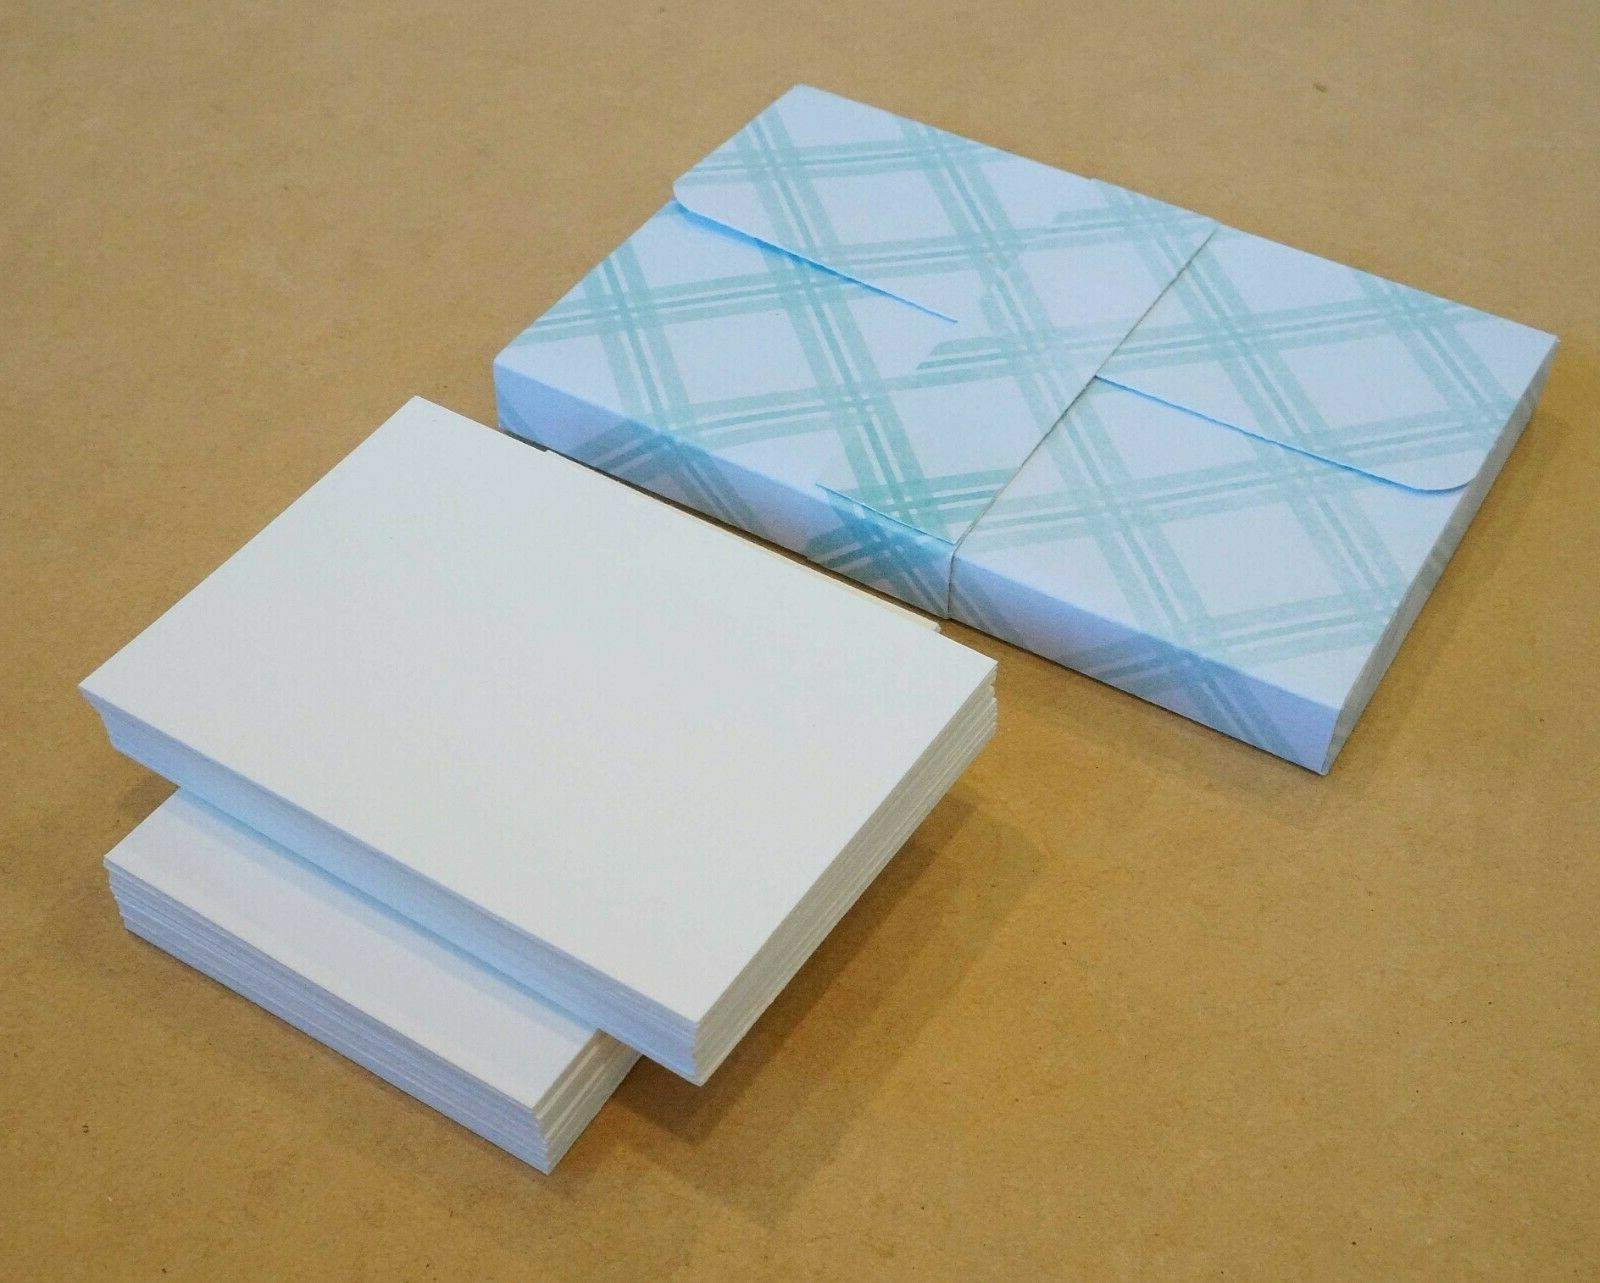 50 Blank ACEO 2.5 3.5 Trading Cards Canson Watercolor Paper